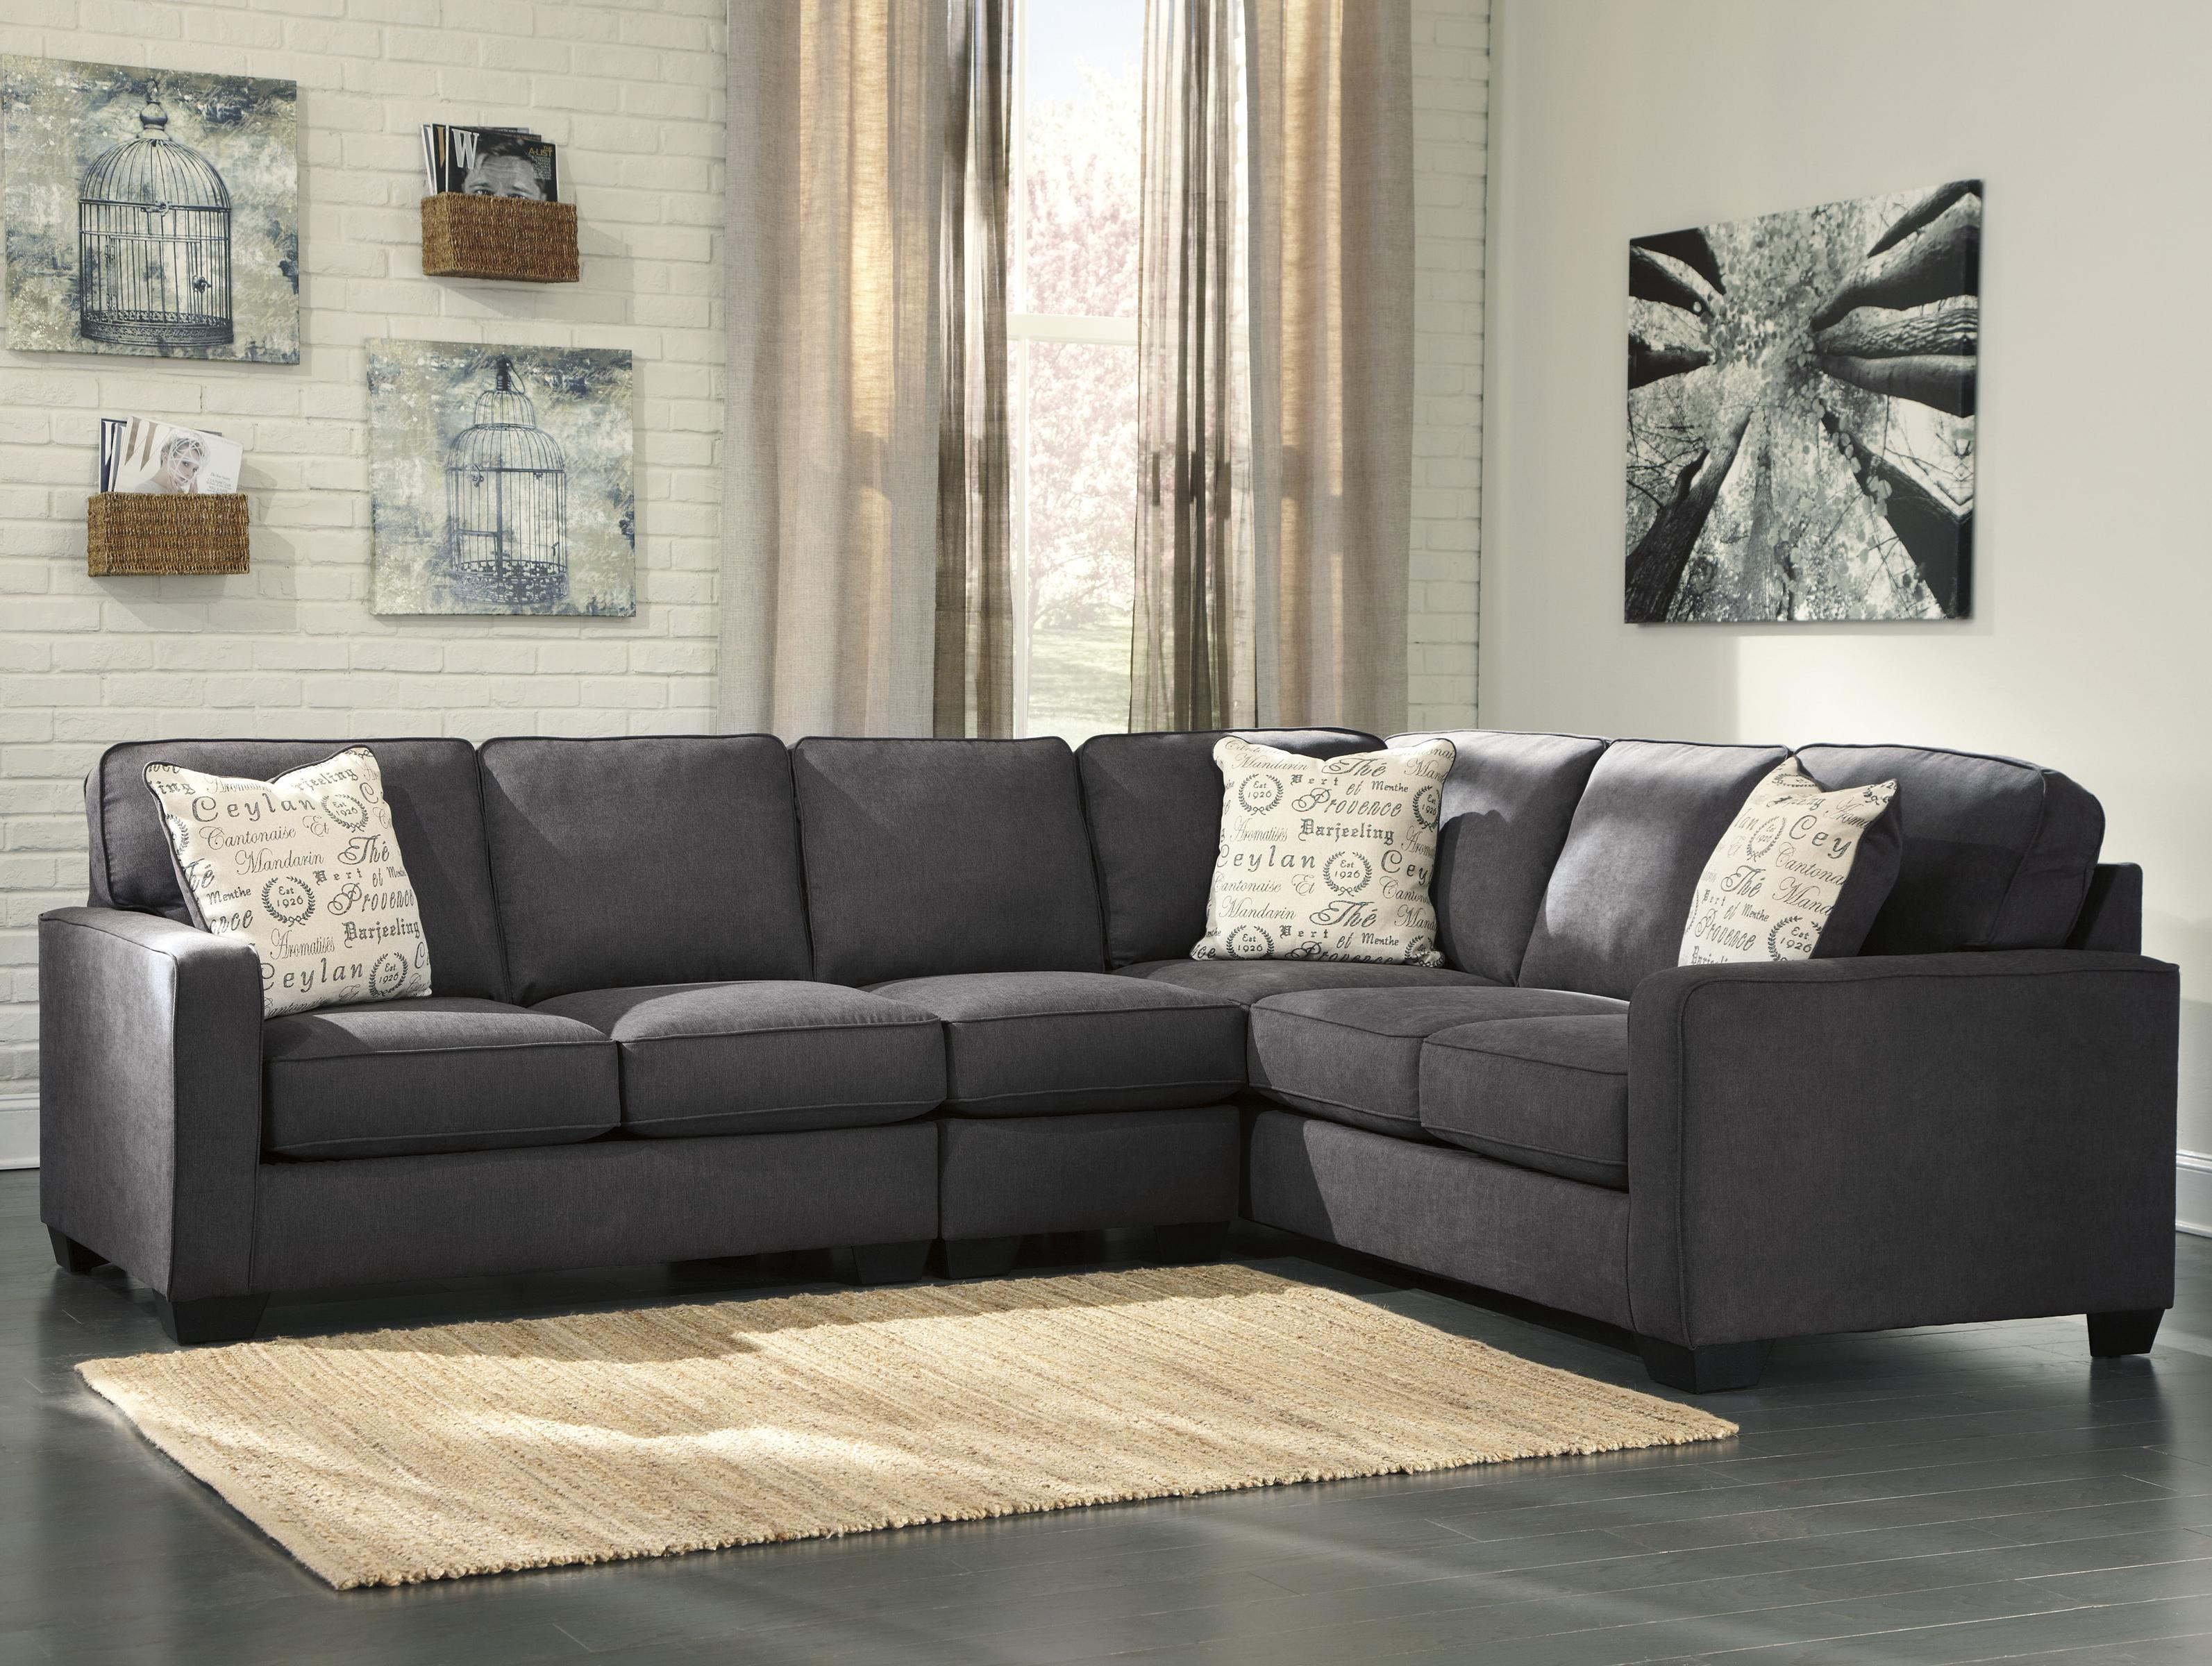 Alenya - Charcoal 3-Piece Sectional with Left Loveseat by Signature Design by Ashley at Catalog Outlet